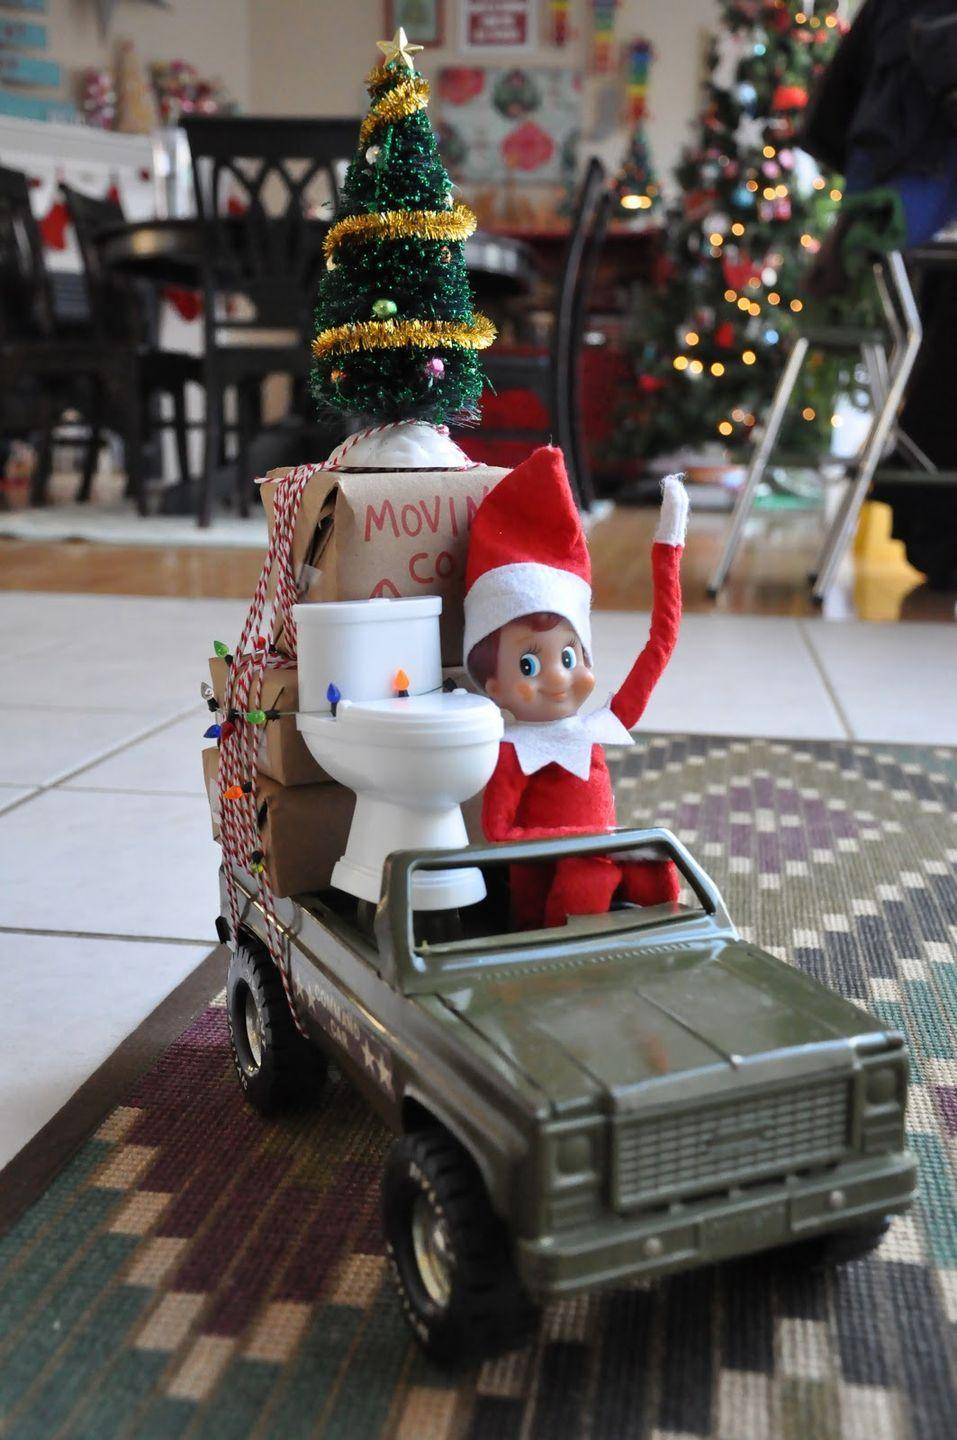 """<p>Say goodbye to your elf — Merry Christmas and see you next year! </p><p><em><a href=""""http://www.littlebitfunky.com/2012/12/31-days-of-elf-on-shelf-31-elf-ideas.html"""" rel=""""nofollow noopener"""" target=""""_blank"""" data-ylk=""""slk:See more at Little Bit Funky »"""" class=""""link rapid-noclick-resp"""">See more at Little Bit Funky » </a></em></p>"""